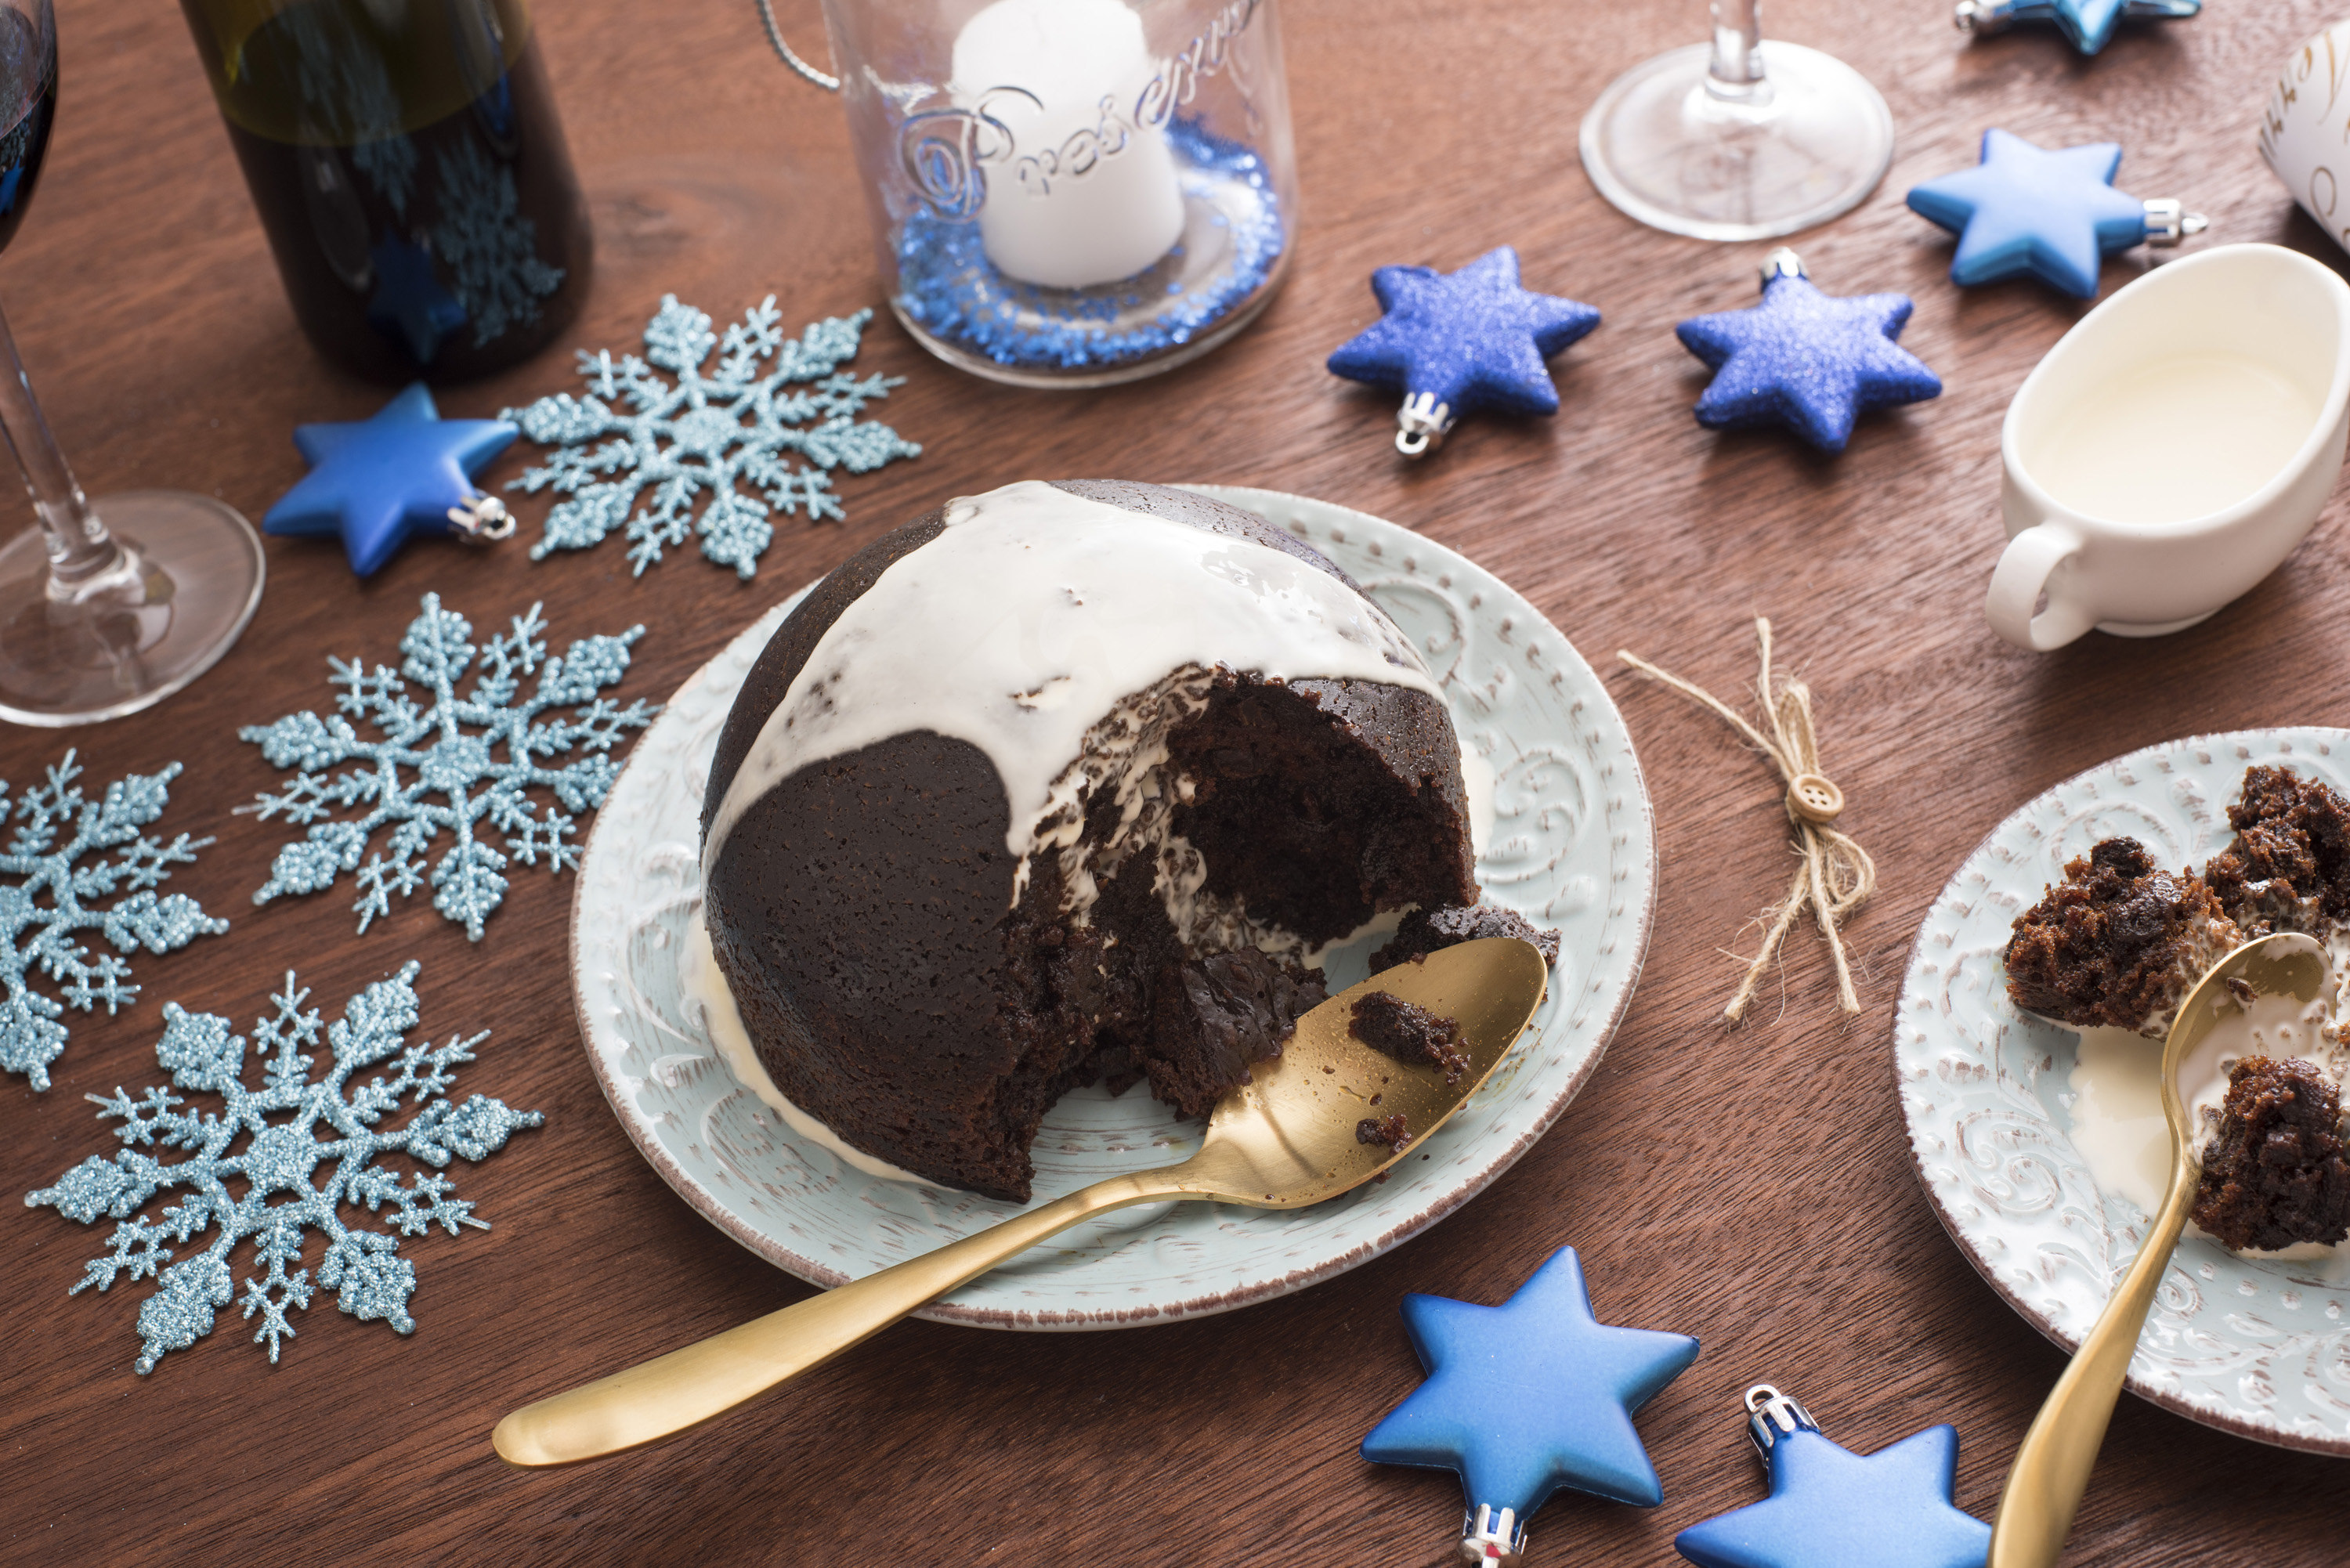 Tasty traditional fruity Christmas pudding served for dinner topped with brandy cream on a festive table with a candle, decorations and wine